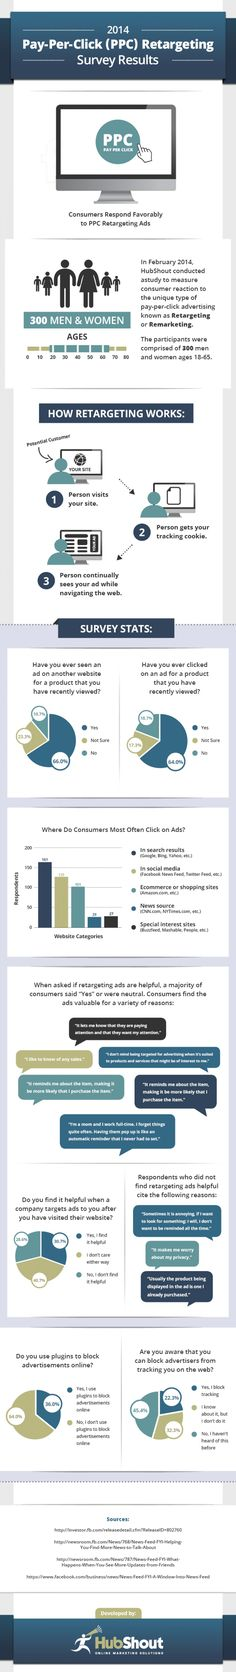 Why You Should Start Thinking About Retargeting - 2014 Statistics Infographic